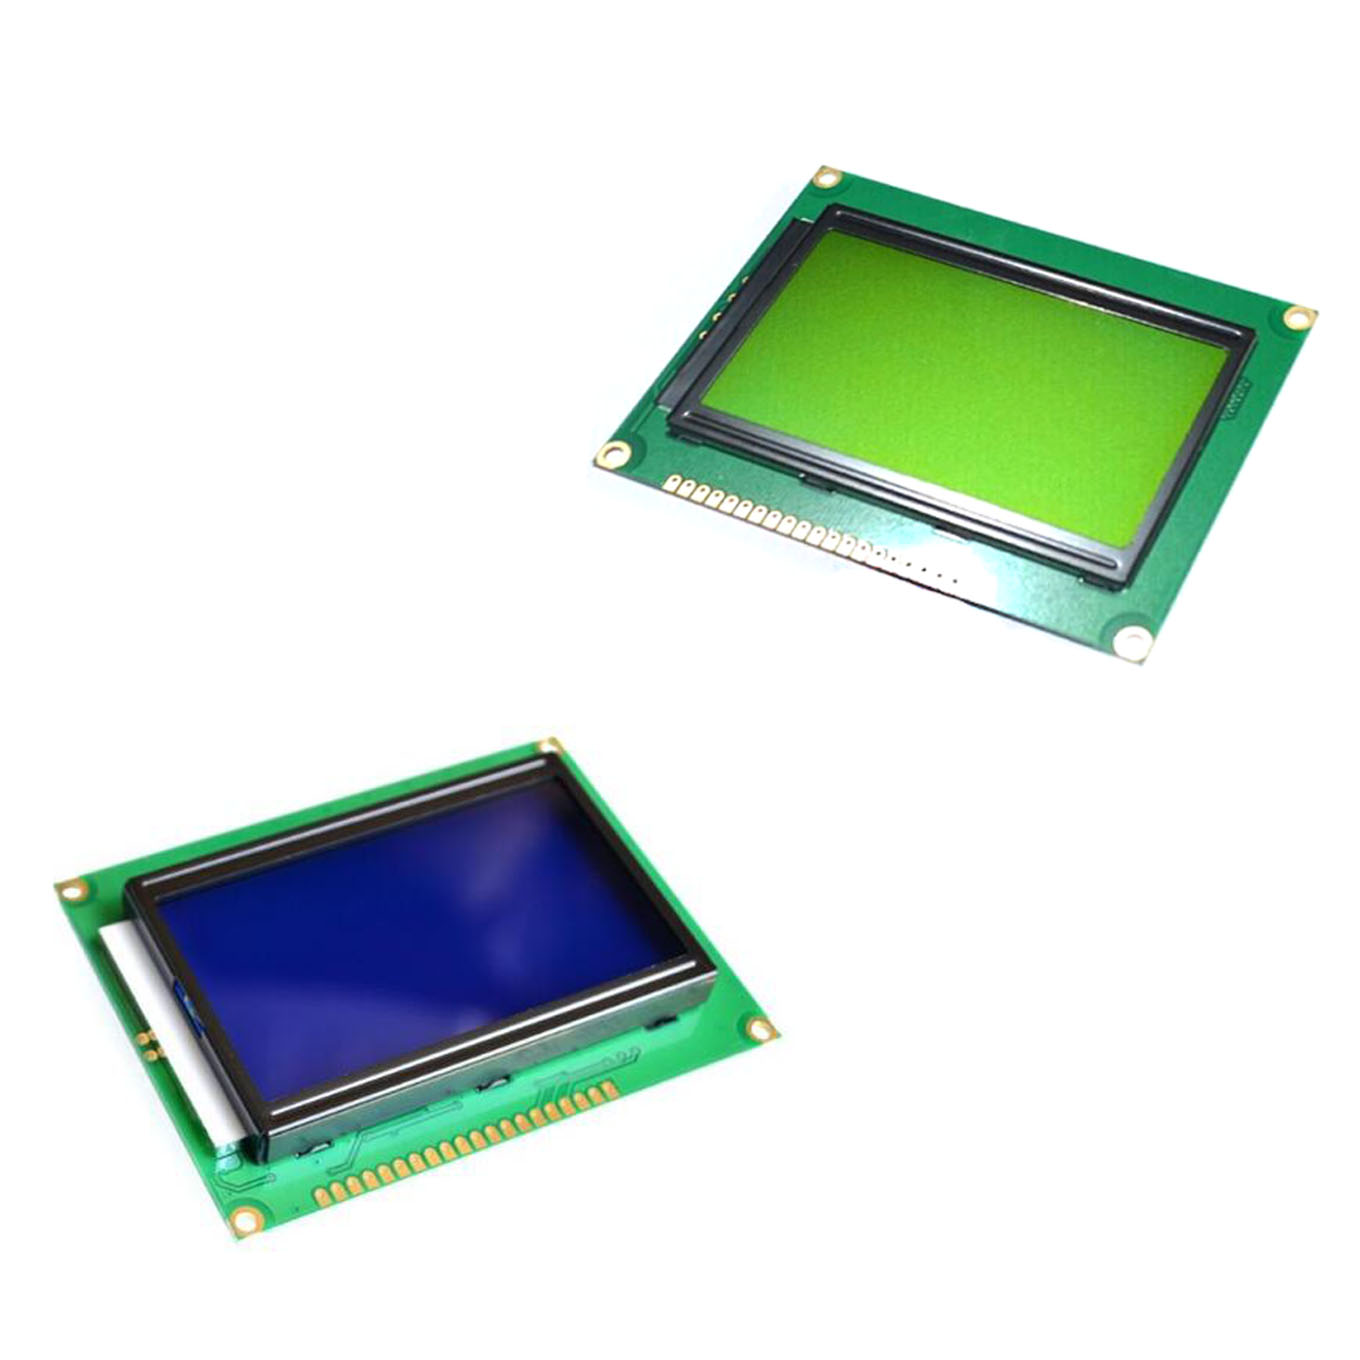 LCD Board Yellow Green Screen 12864 128X64 5V Blue Screen Display ST7920 LCD Module For Arduino 100% New Original